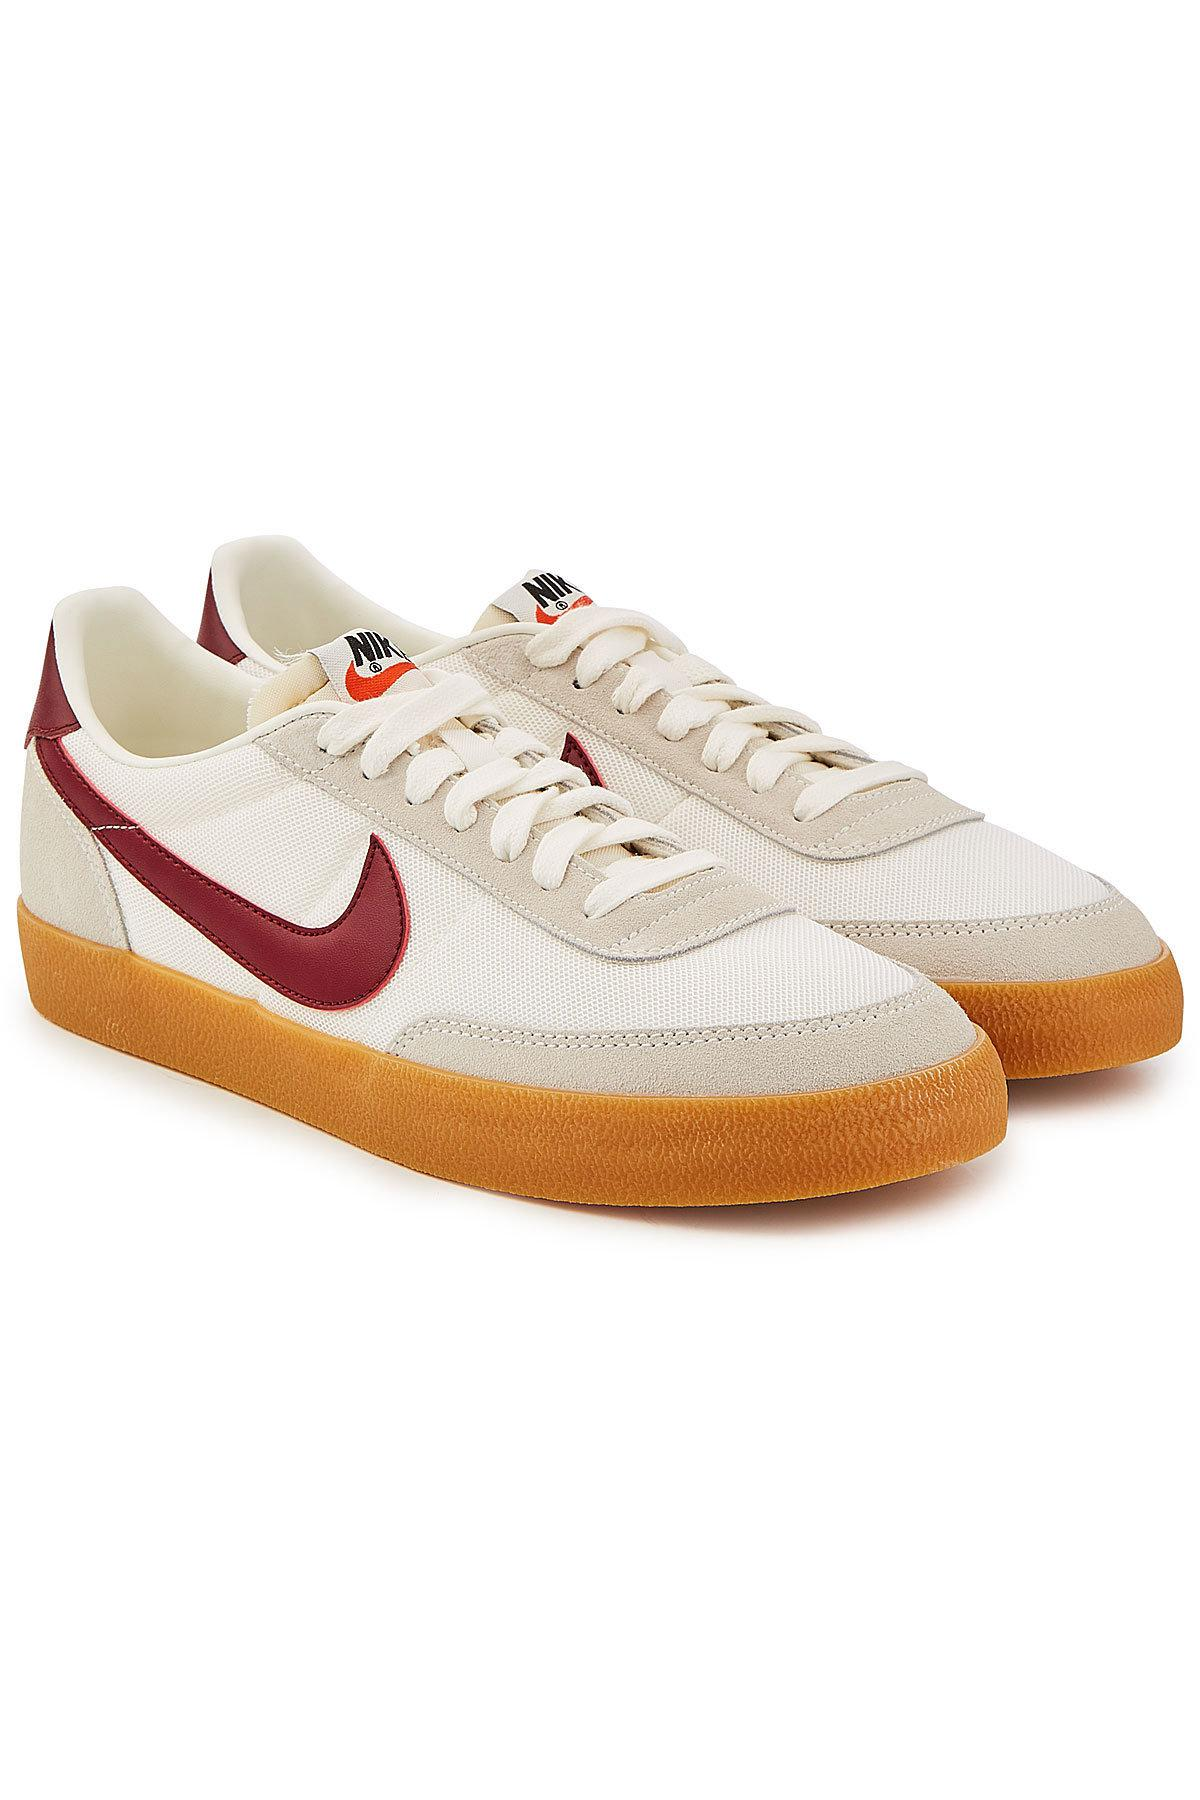 363485a3012c Lyst - Nike Killshot Sneakers With Leather And Suede for Men